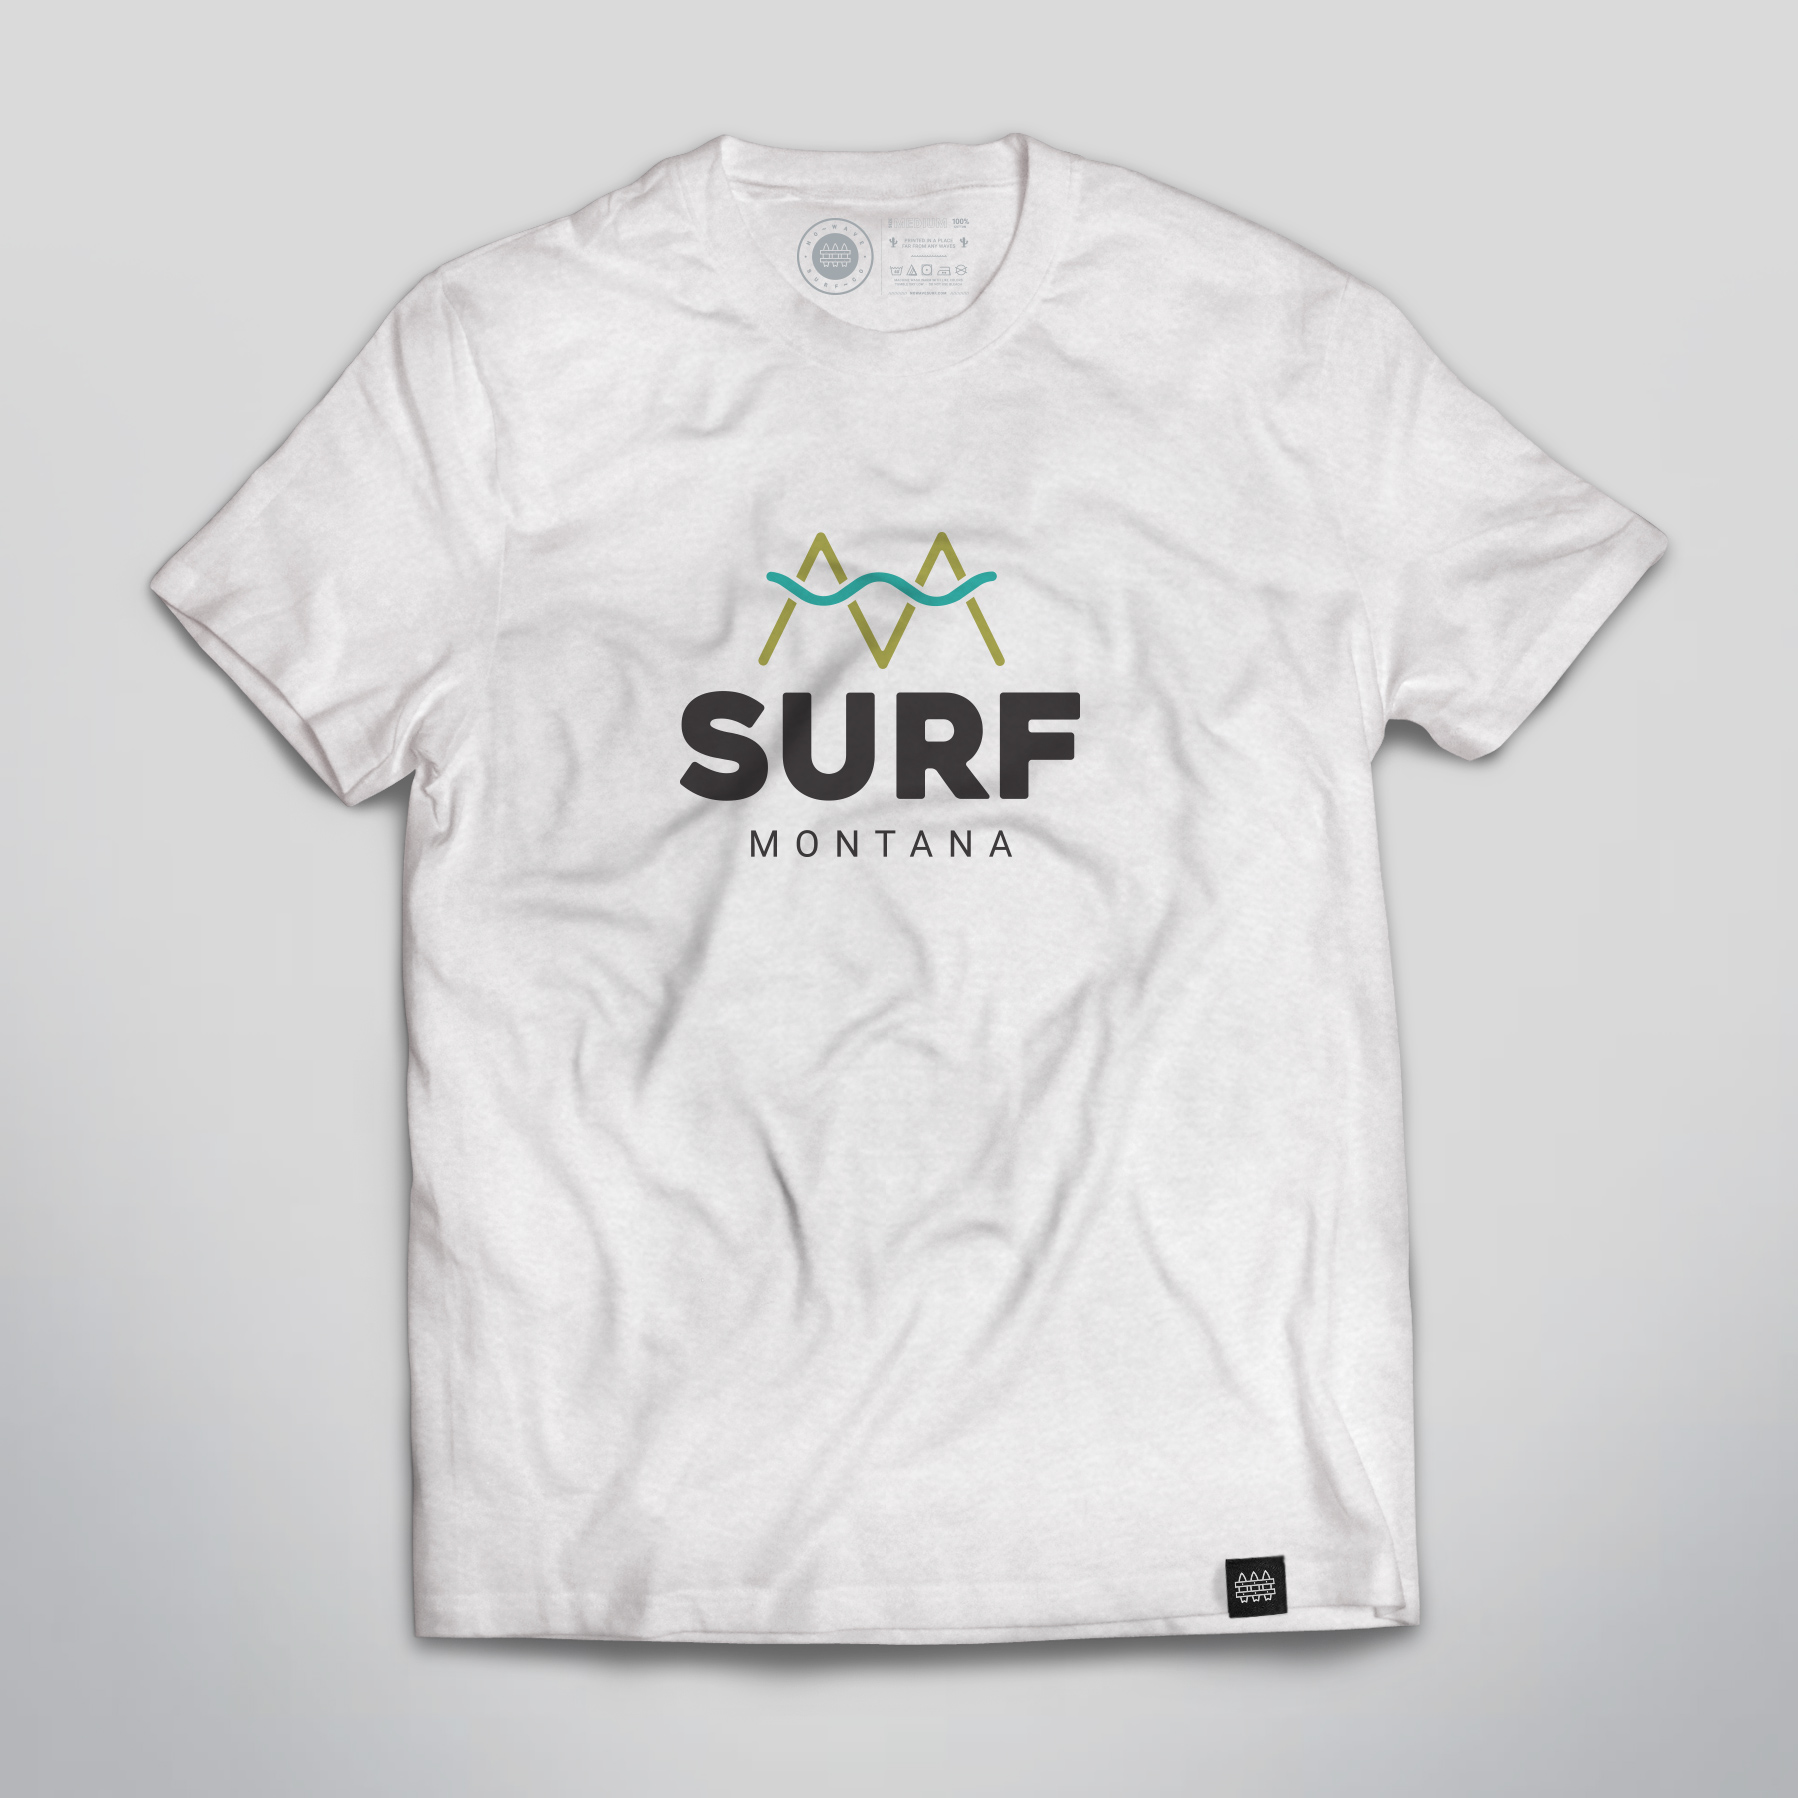 $20.00 - SURF MONTANAHOLLER AT ME WHEN READY